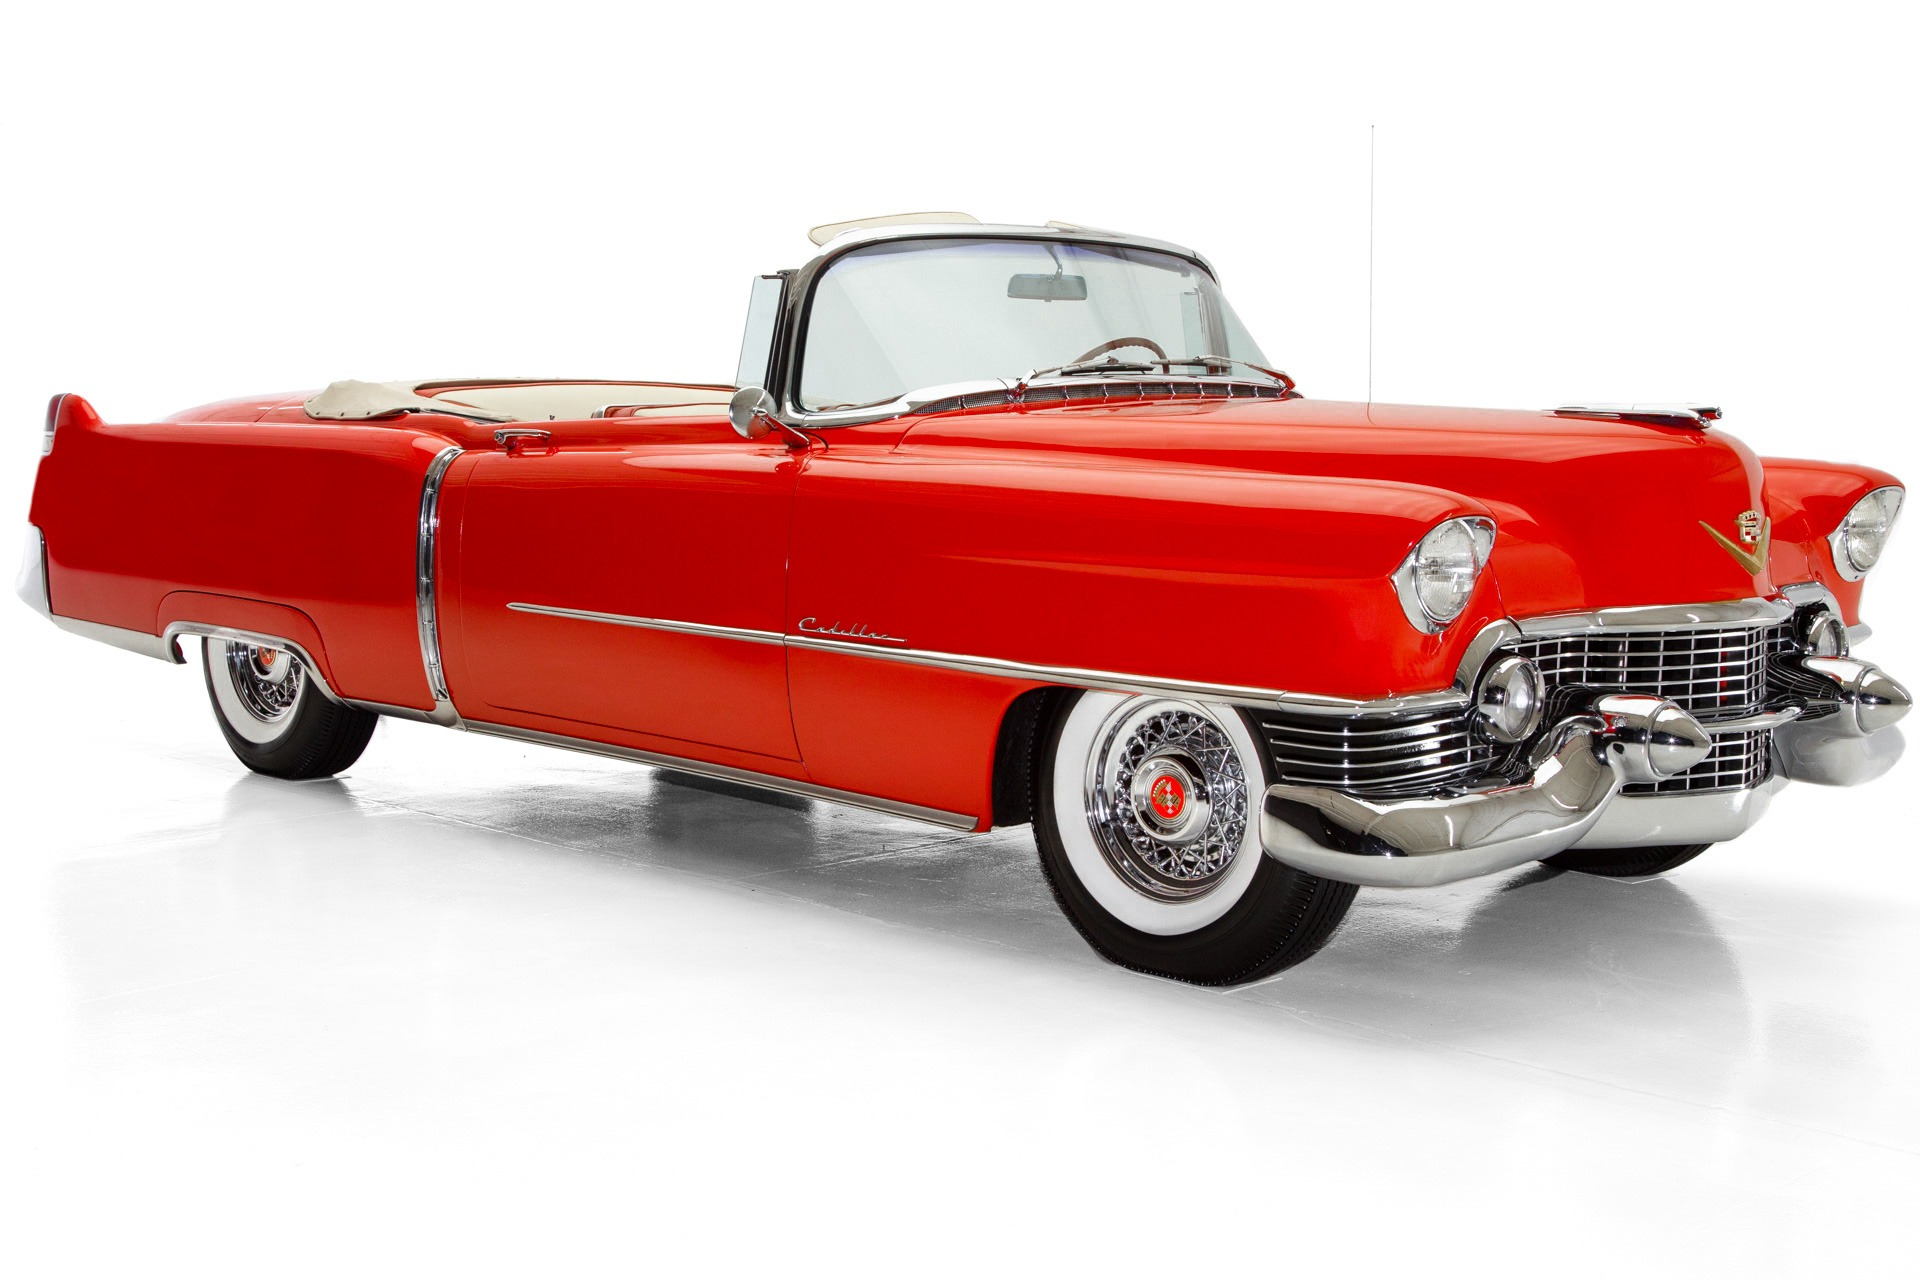 1954 Cadillac Series 62 Convertible Gorgeous      American Dream     1954 Cadillac Series 62 Convertible Gorgeous